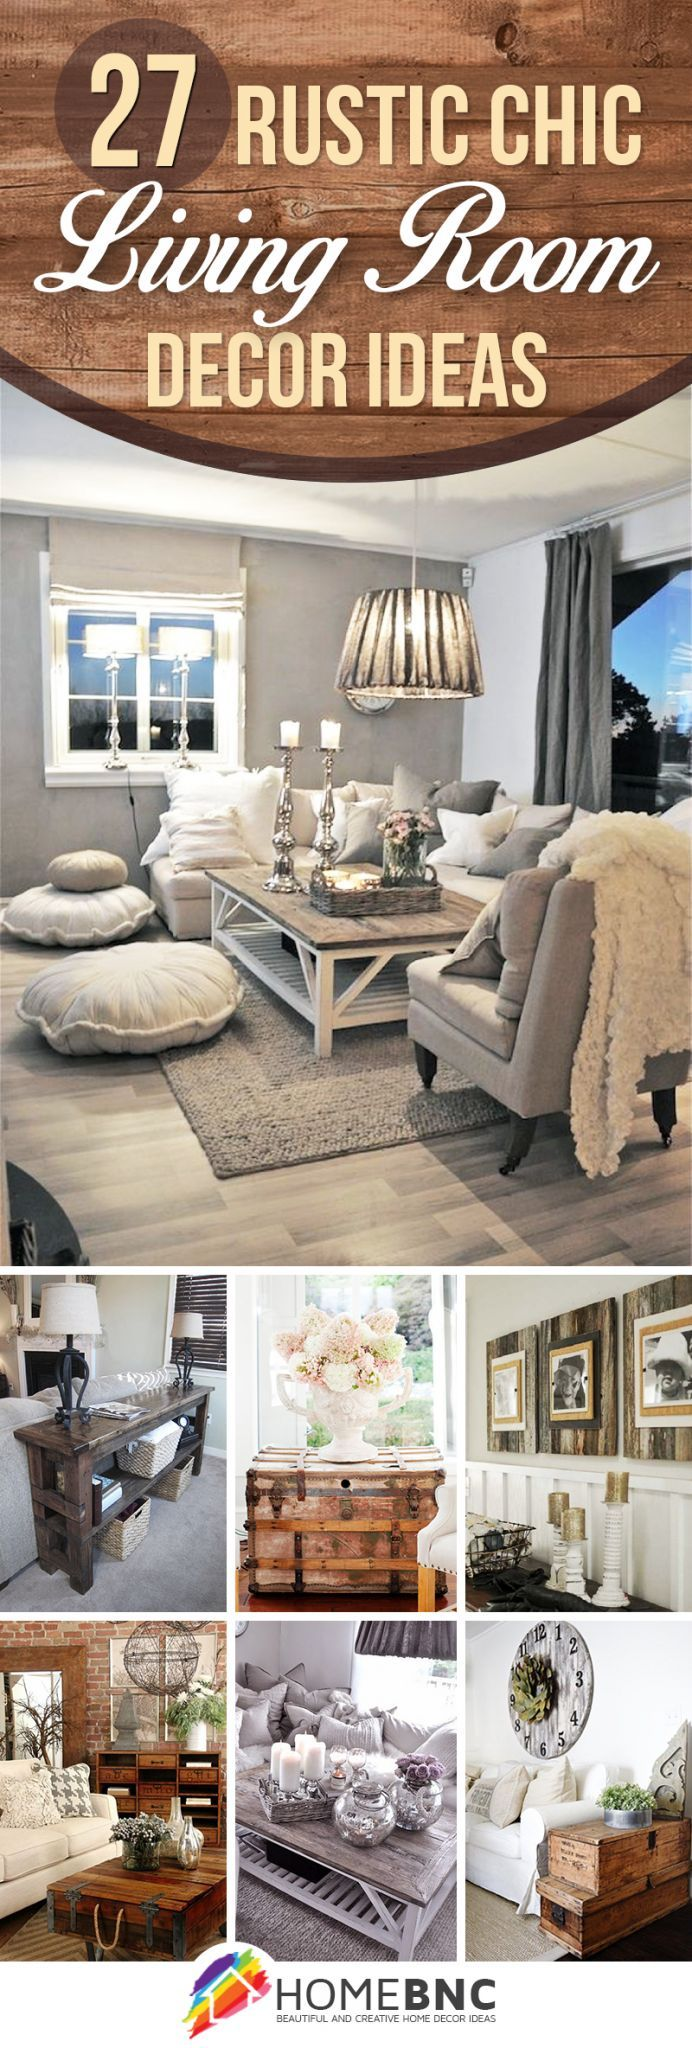 best 25 living room decorations ideas on pinterest frames ideas above the couch and rustic mantle